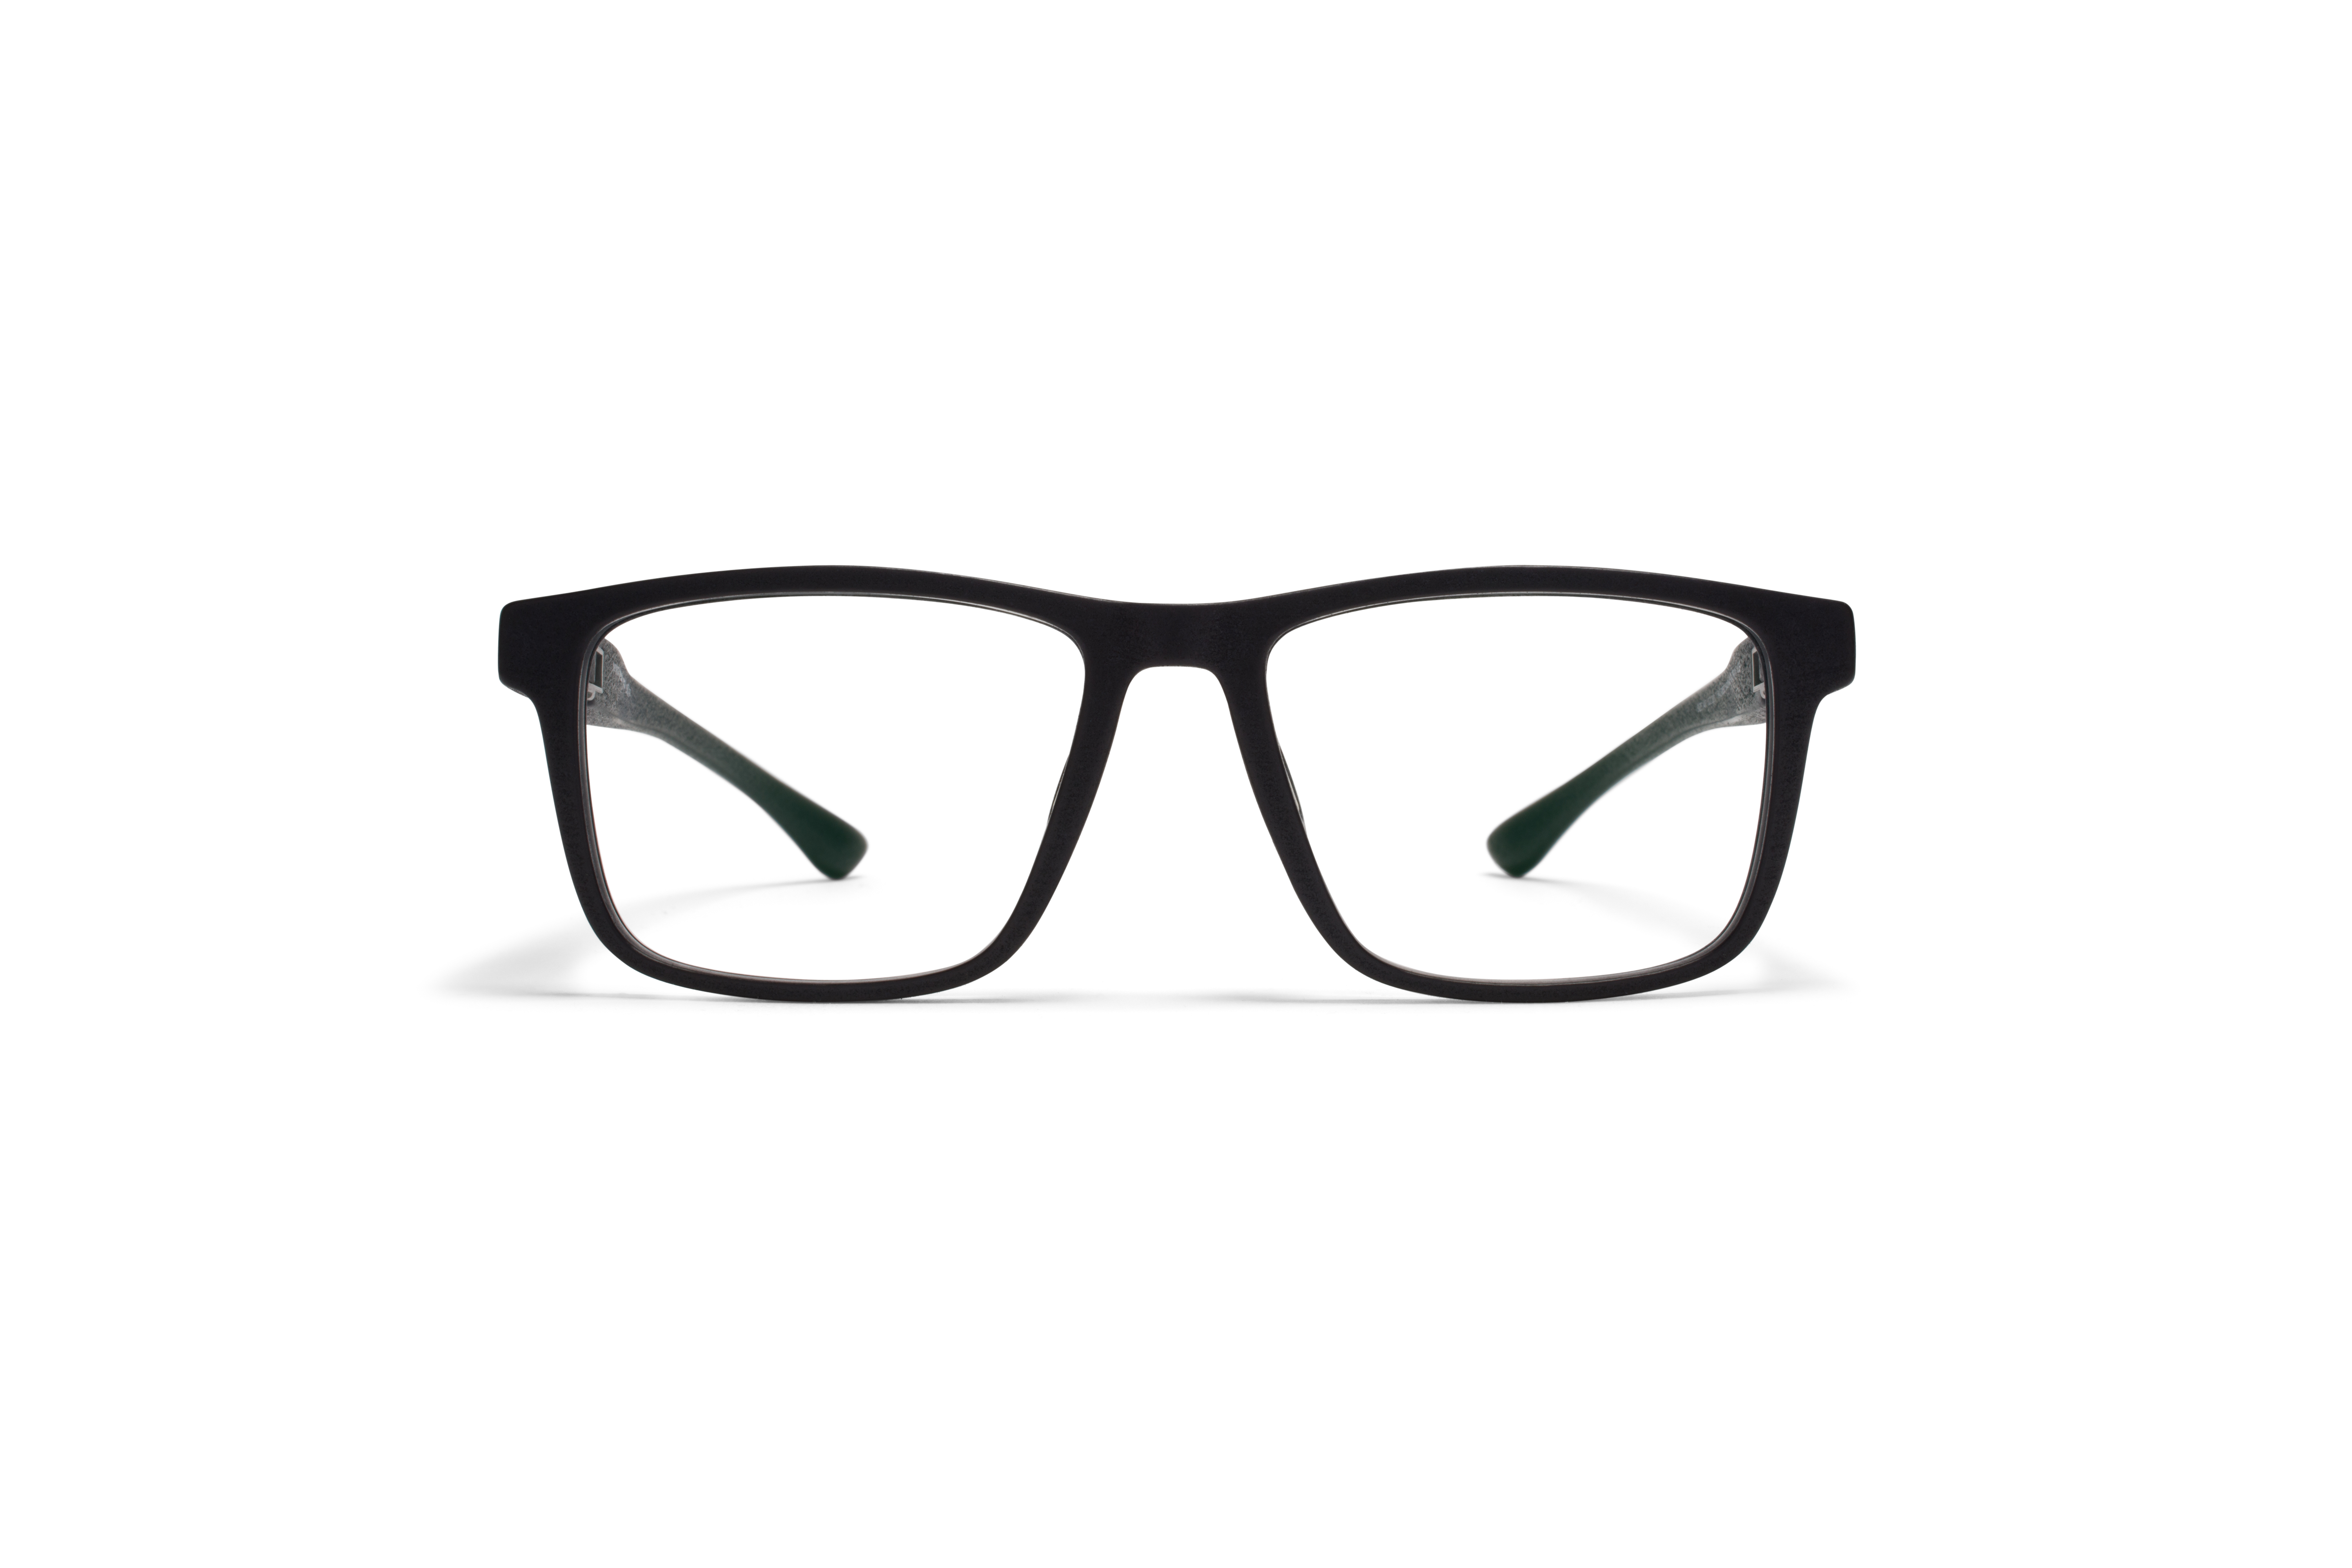 Mykita Mylon Rx Mars Md1 Pitch Black Clear 35022115707c210de4f3